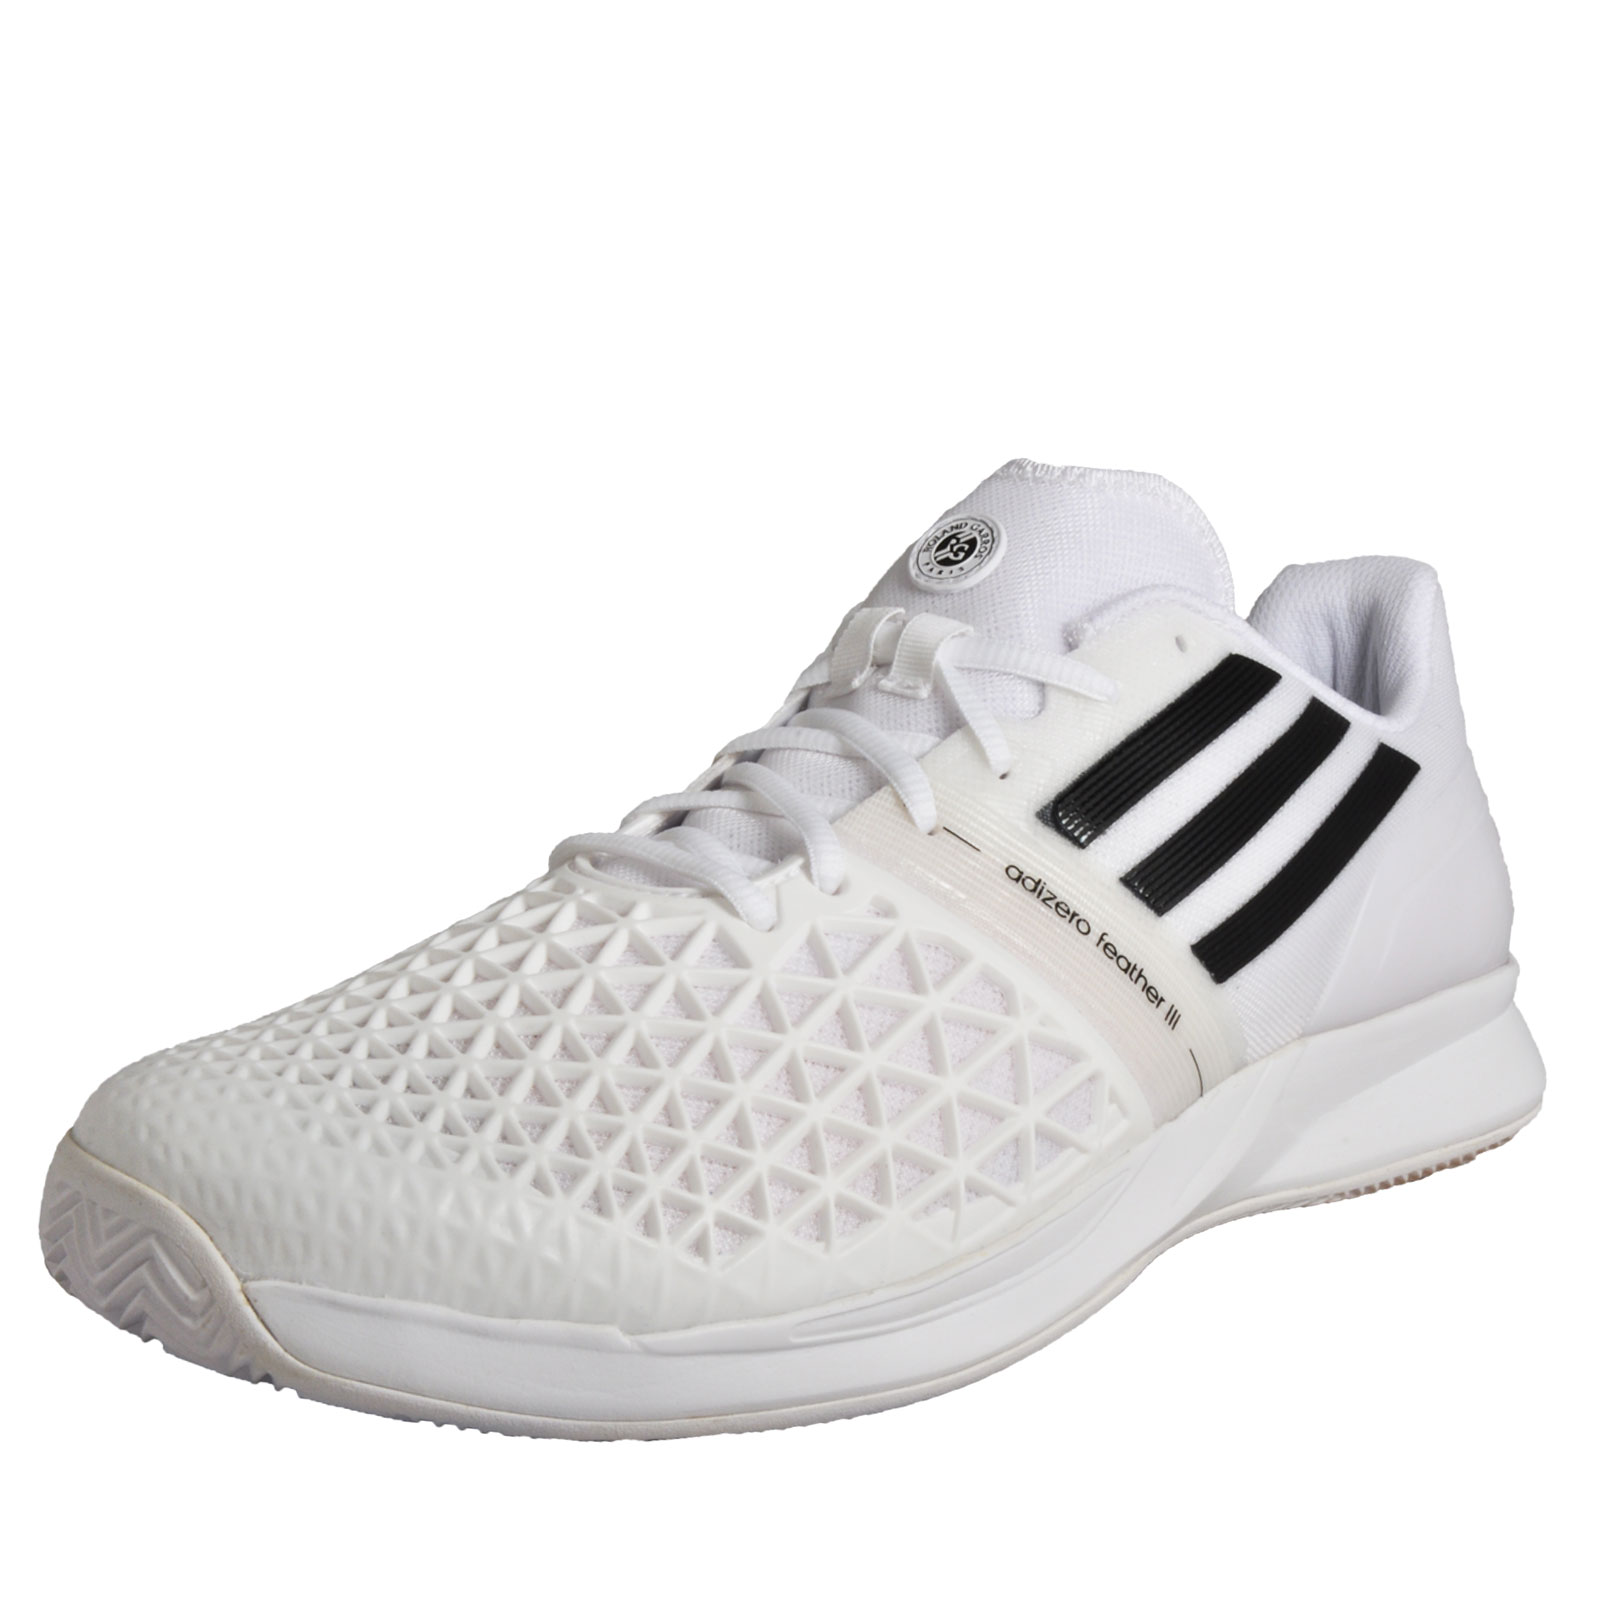 best service fe963 1b3d5 Details about Adidas CC Adizero Feather III RG Men s Tennis Shoes Court  Fitness Trainers White